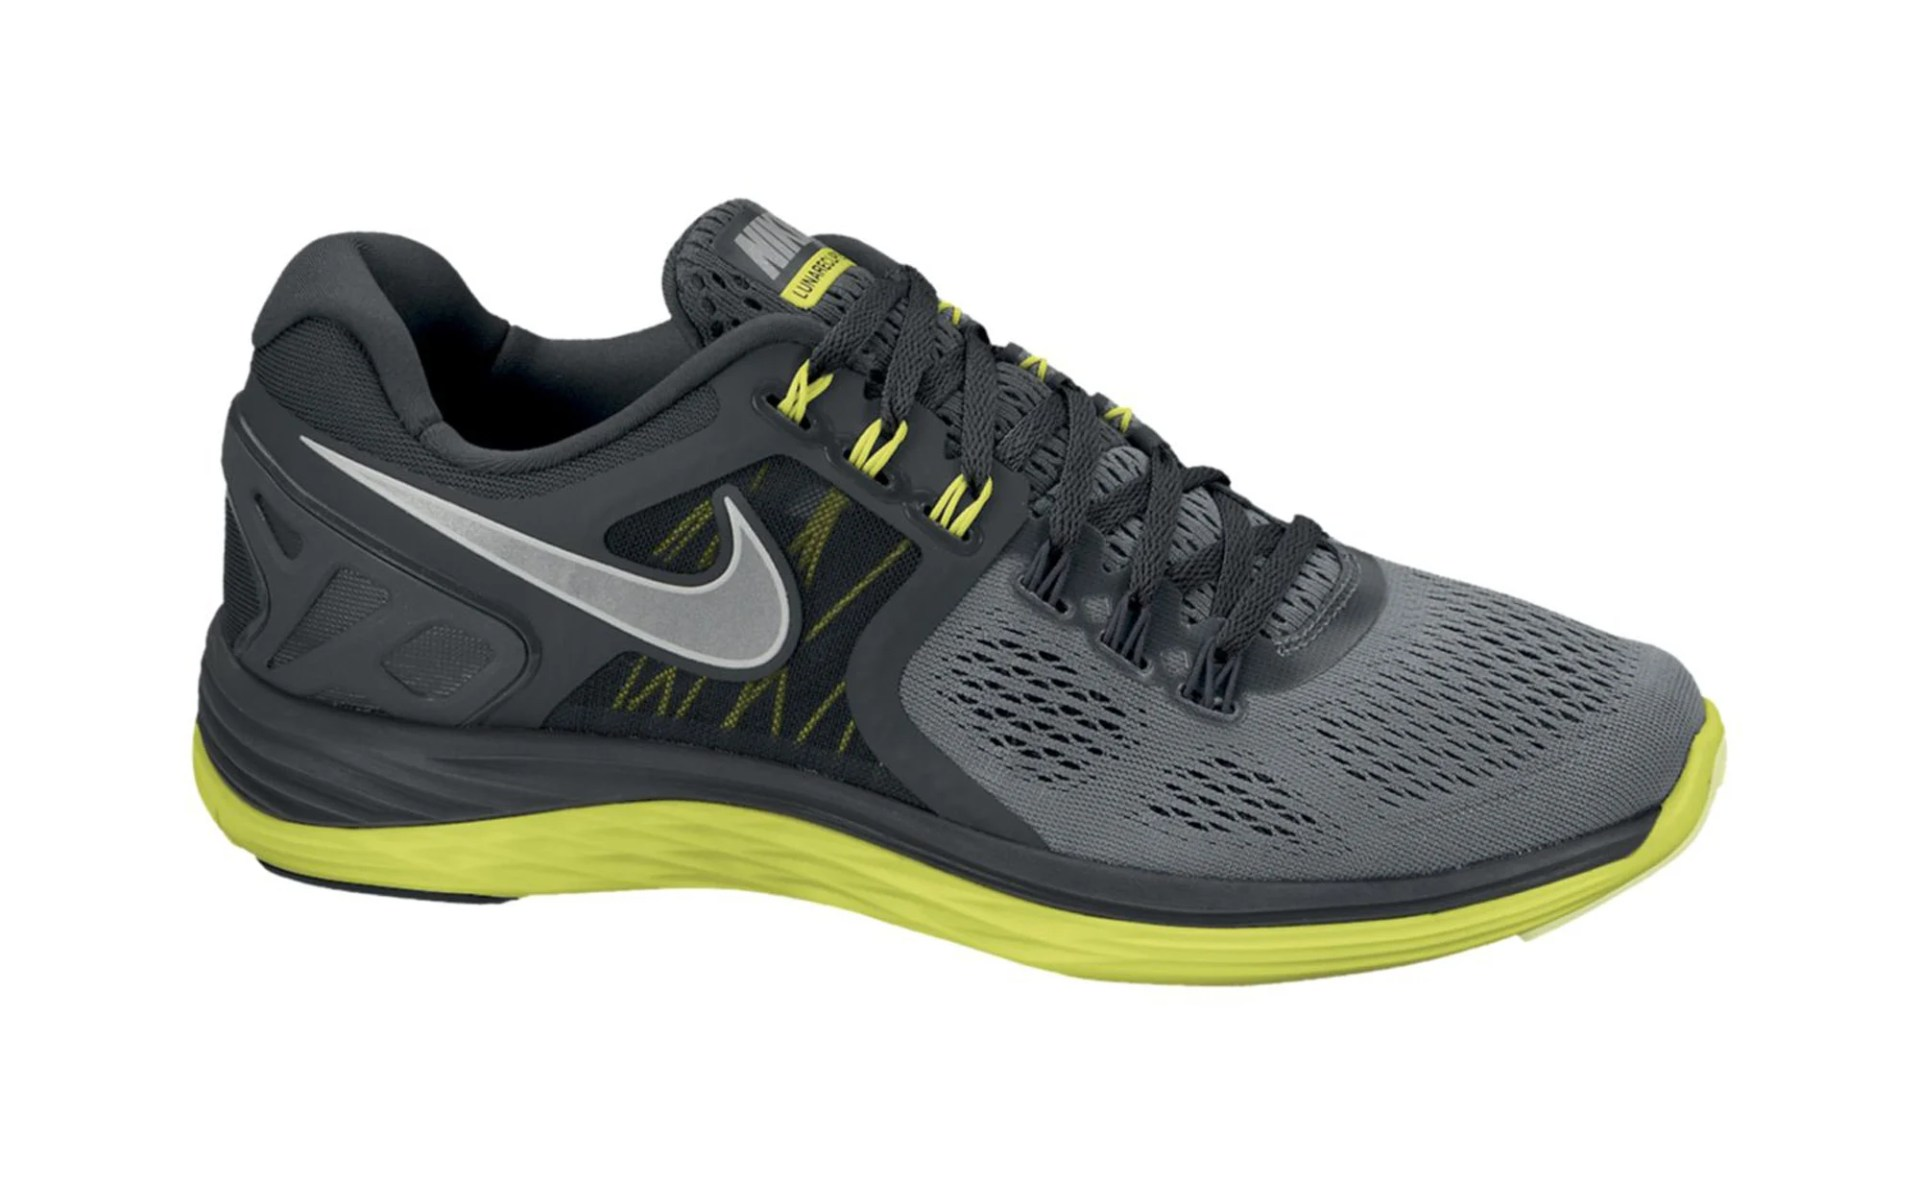 cef92b8f76f9 Nike LunarEclipse 4 Now Available